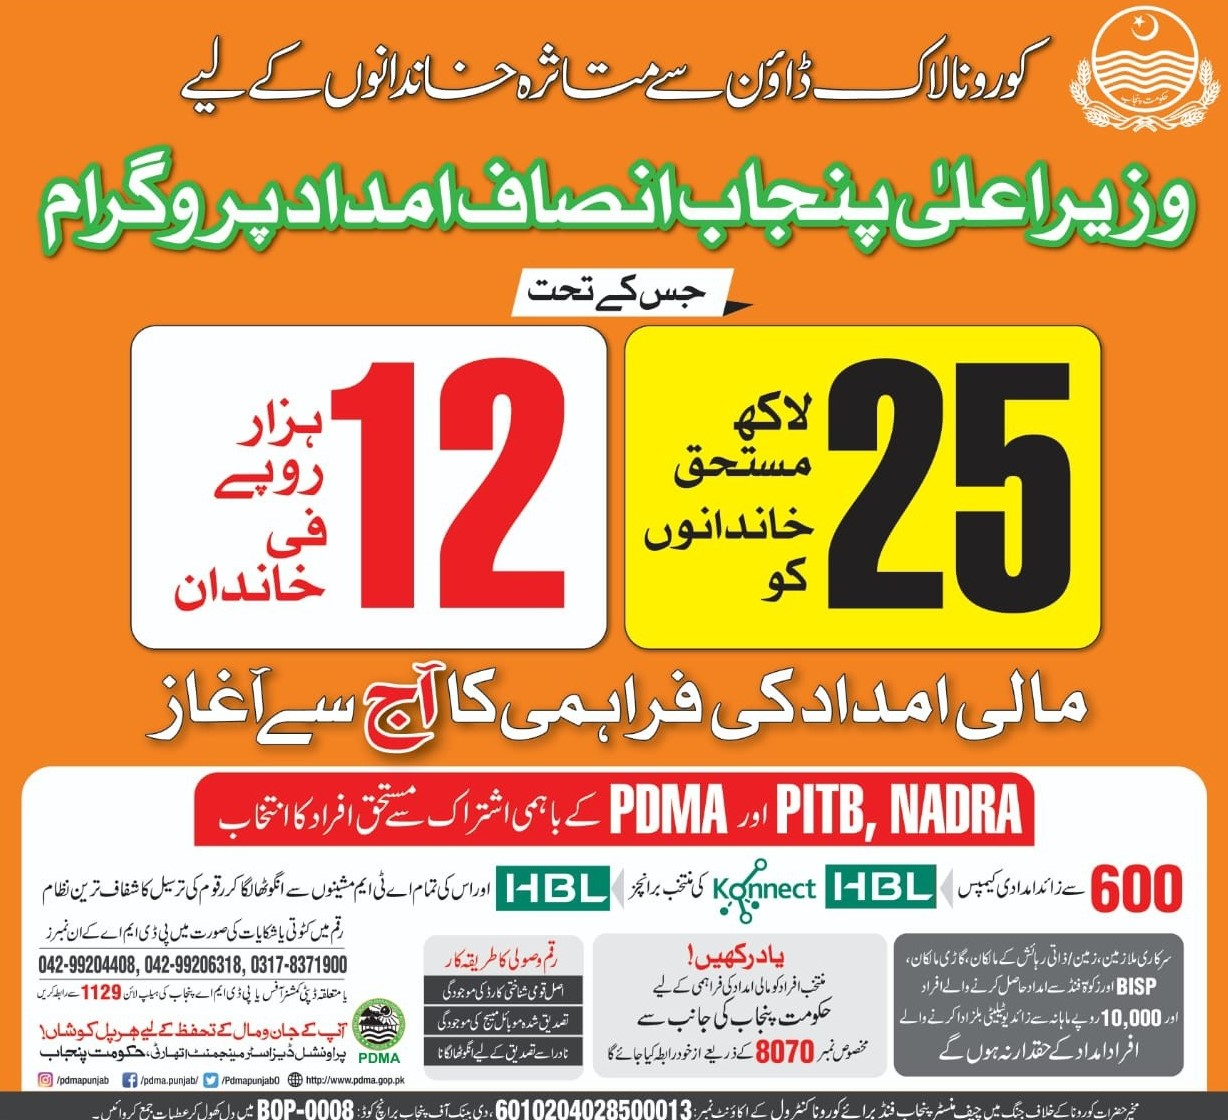 cm punjab insaf imdad program